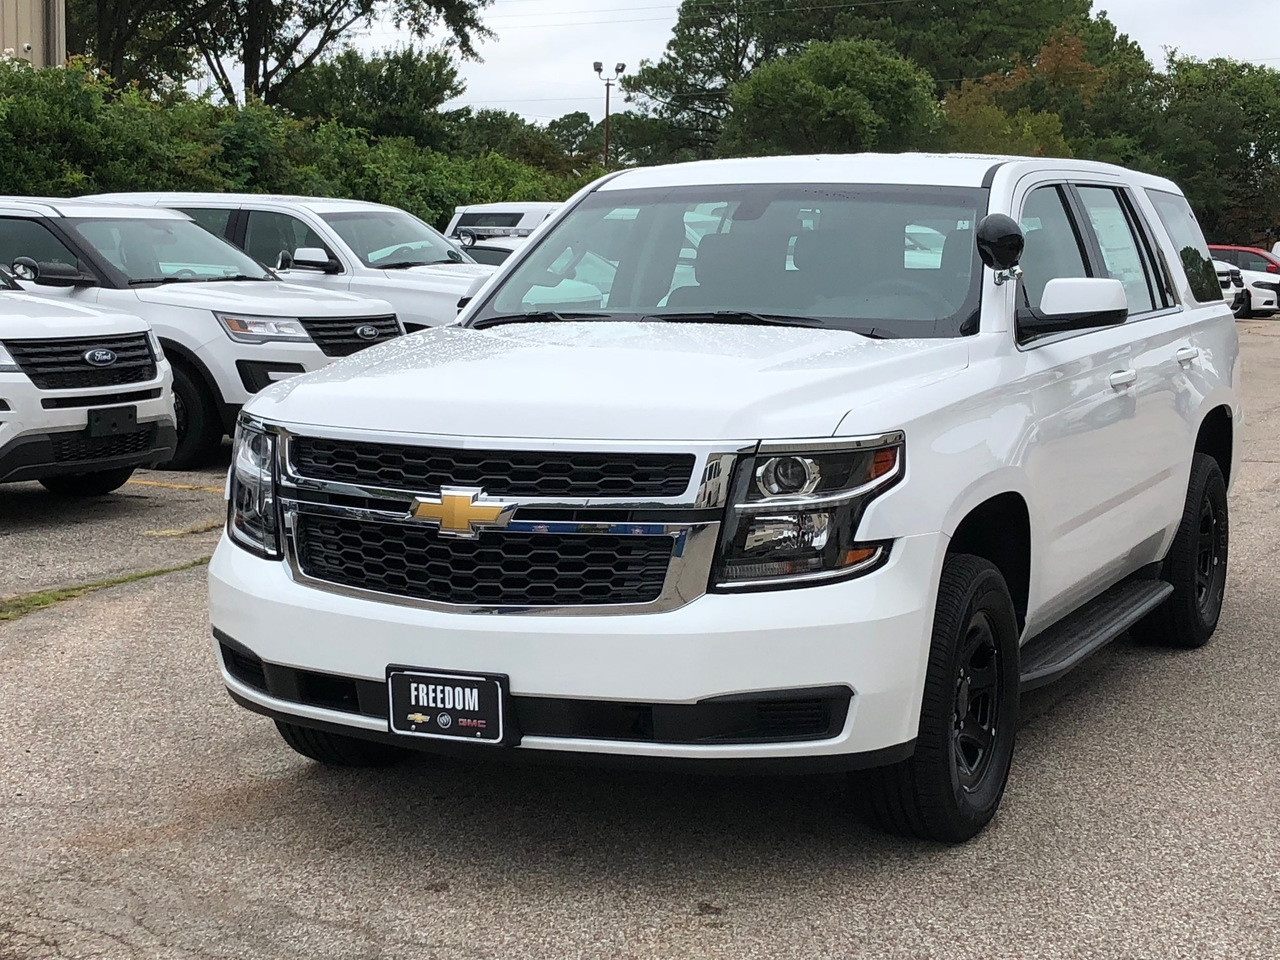 New 2019 Chevy Tahoe Police Package V8 2wd Ready To Be Built As A Slick Top Admin Package Choose Any Color Led Lights Delivery